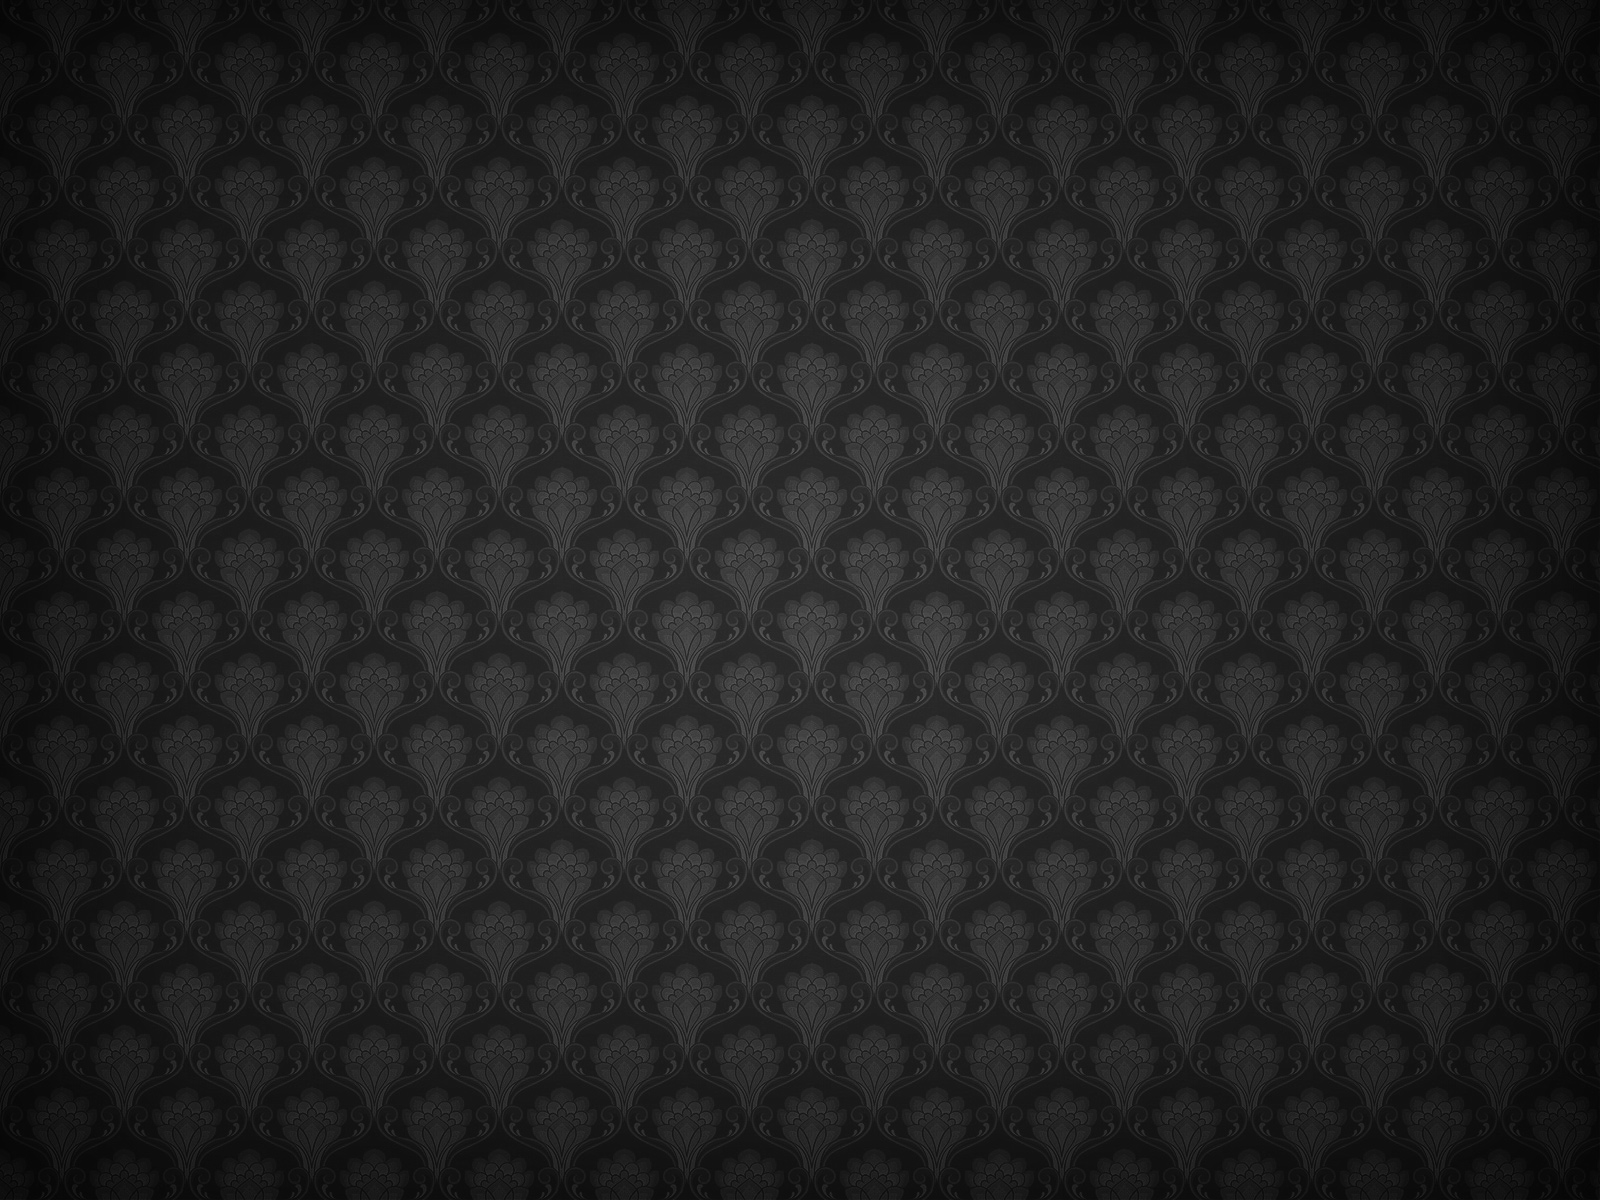 floral pattern wallpaper black 1600x1200 Music artists hd wallpapers